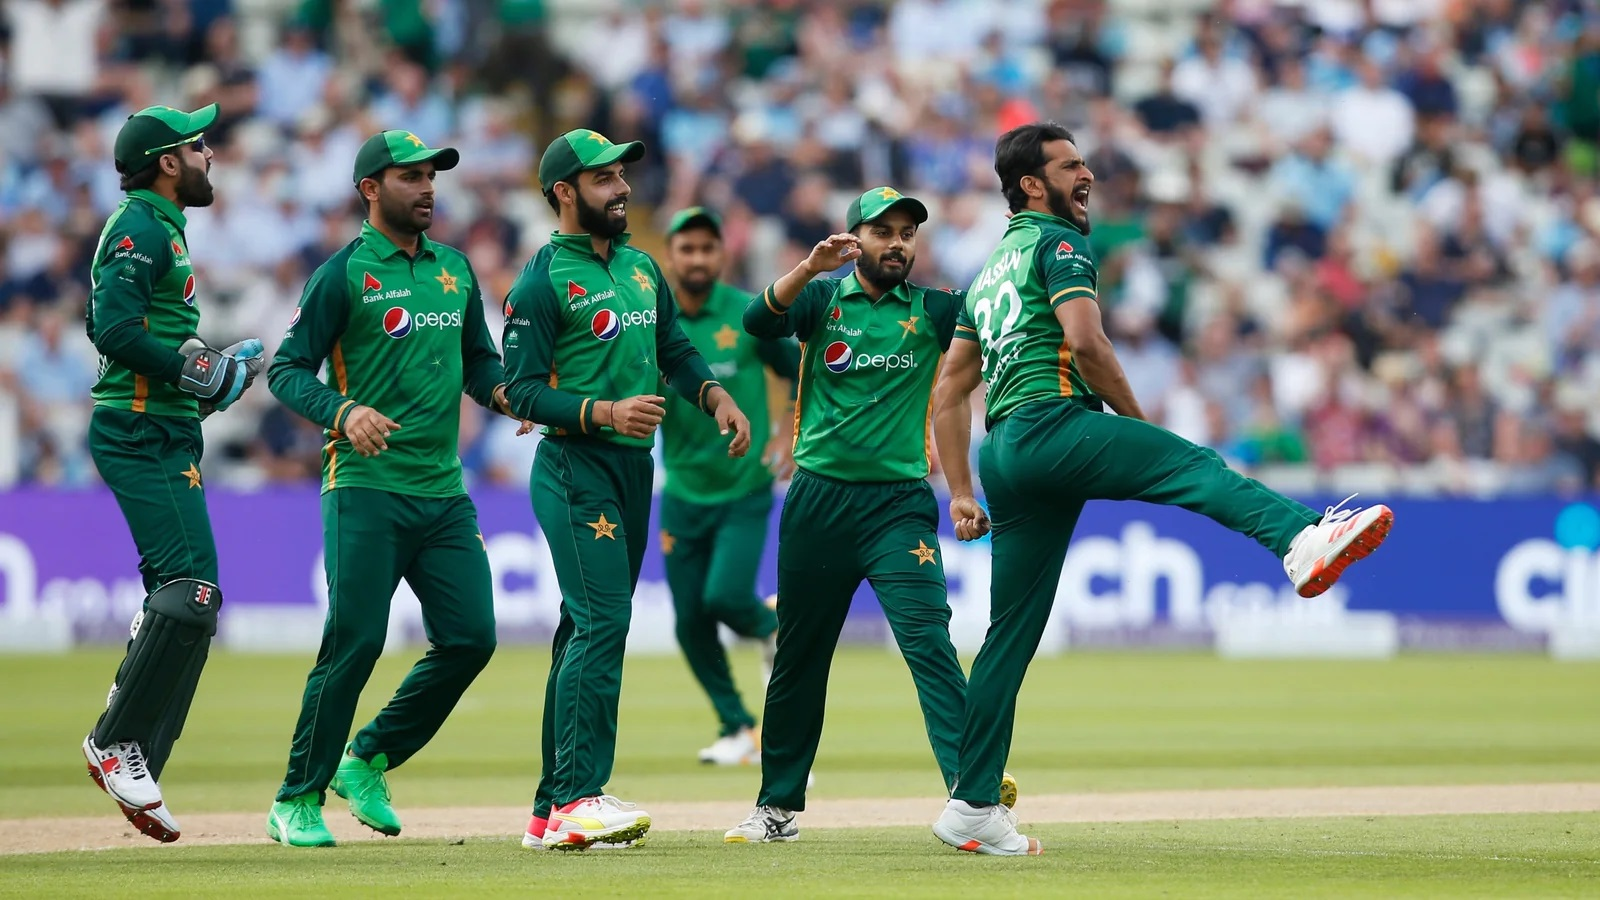 T20 World Cup 2021: Pakistan Squad, Schedule, Date, Time, And Venue